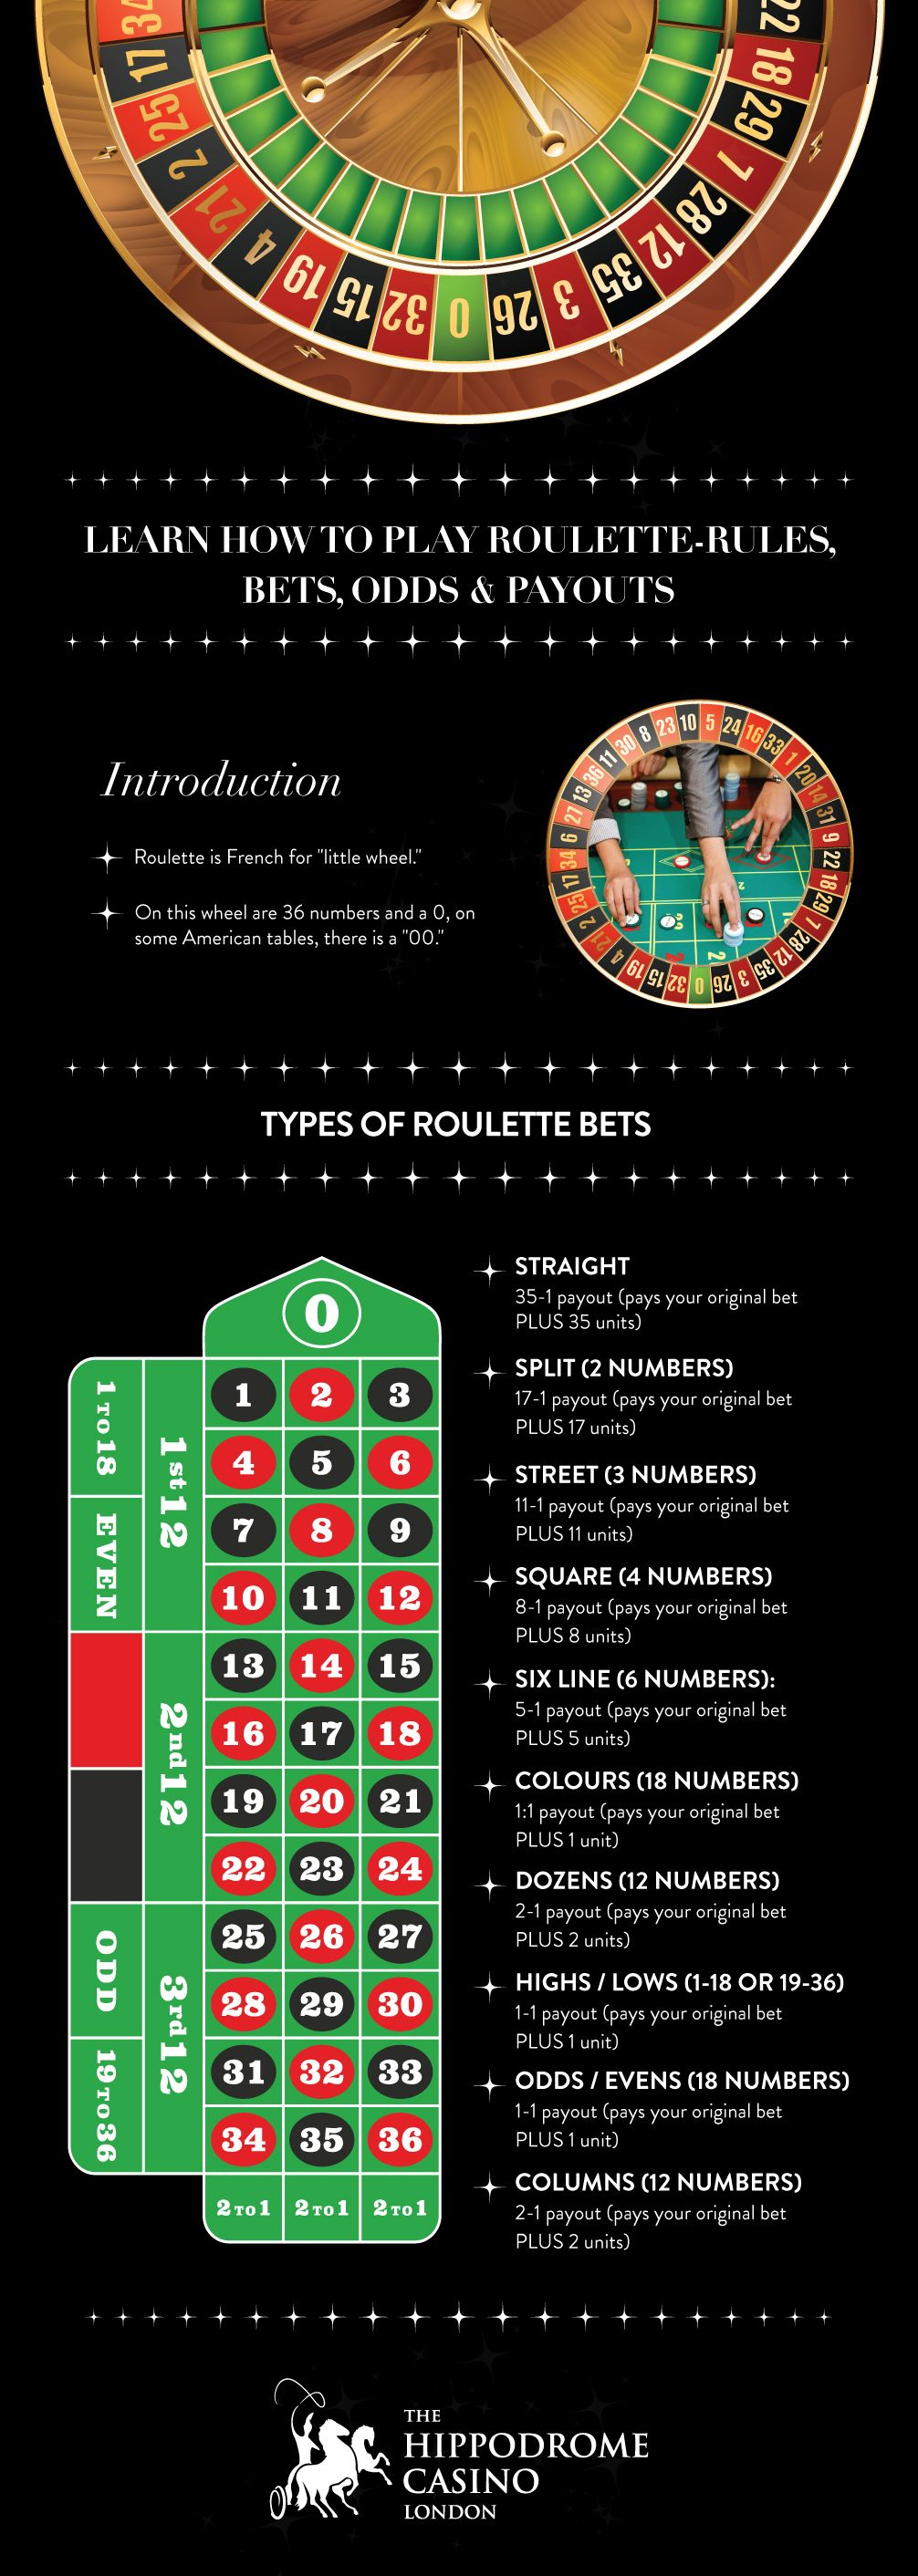 Play roulette at hippodrome casino london play roulette